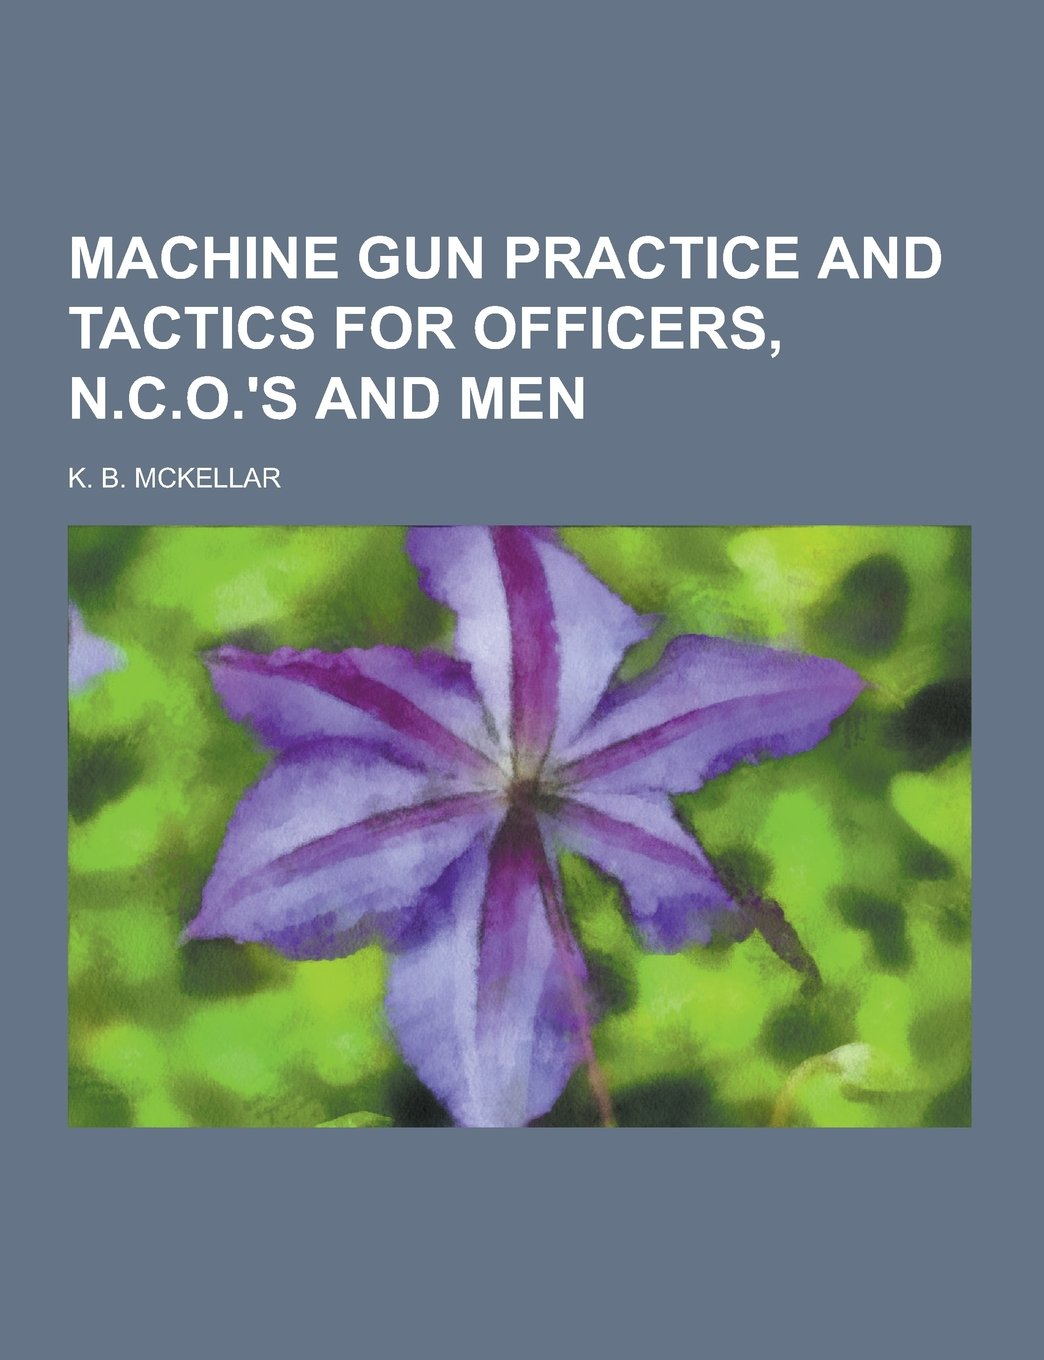 Machine Gun Practice and Tactics for Officers, N.C.O.'s and Men PDF